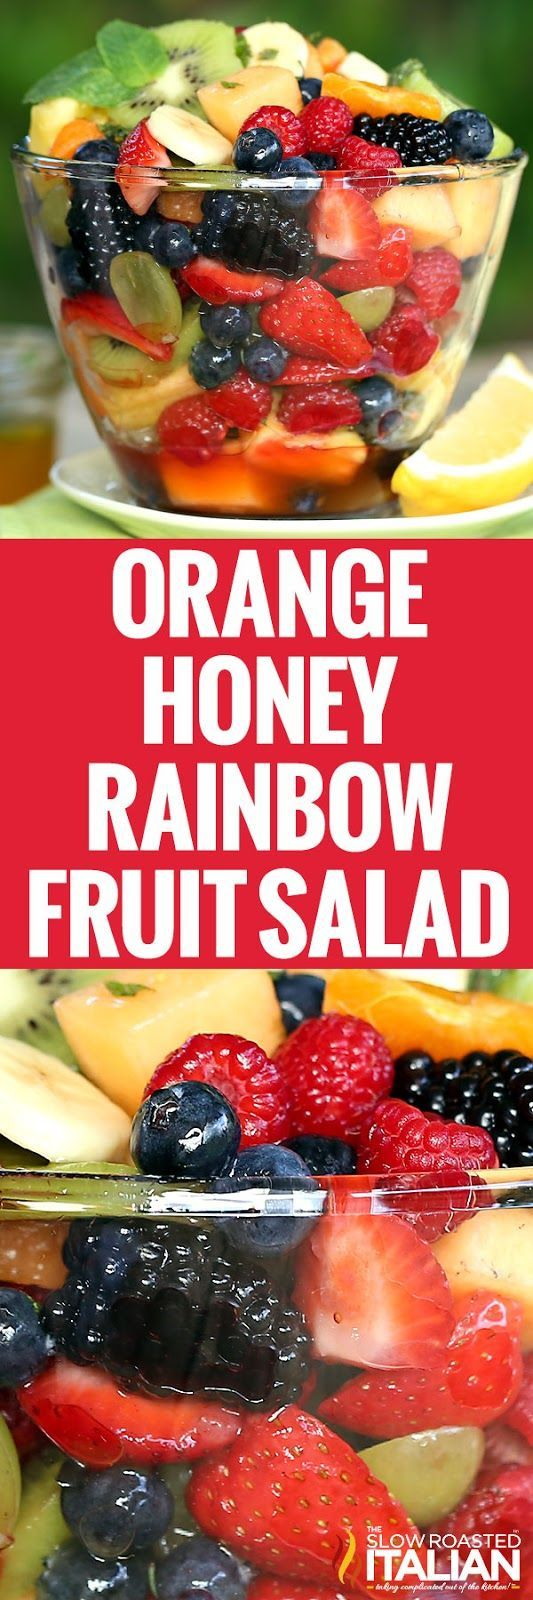 This orange honey rainbow fruit salad recipe is like a party for your senses.  The orange honey dressing includes a secret ingredient that brings this salad to life.